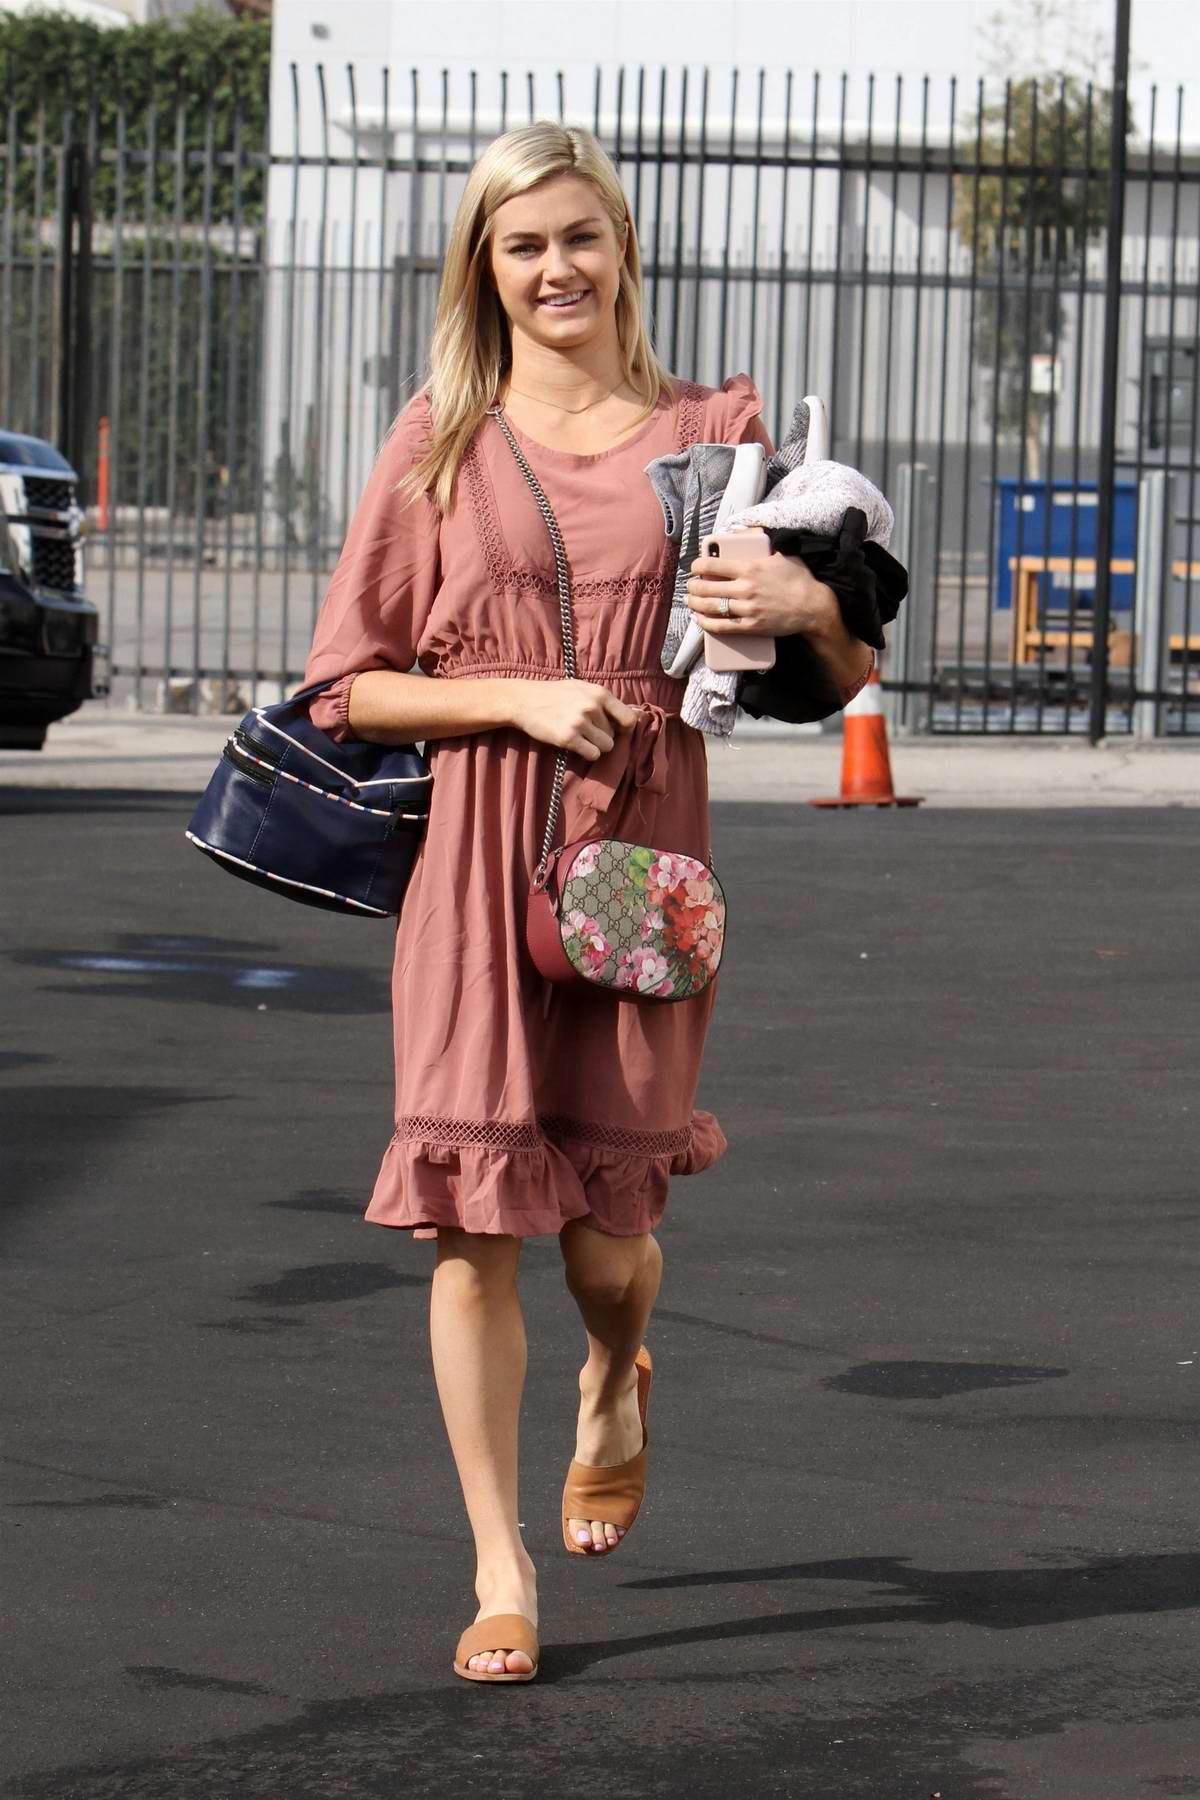 Lindsay Arnold looks lovely in peach colored dress as she arrives at the DWTS studio in Los Angeles